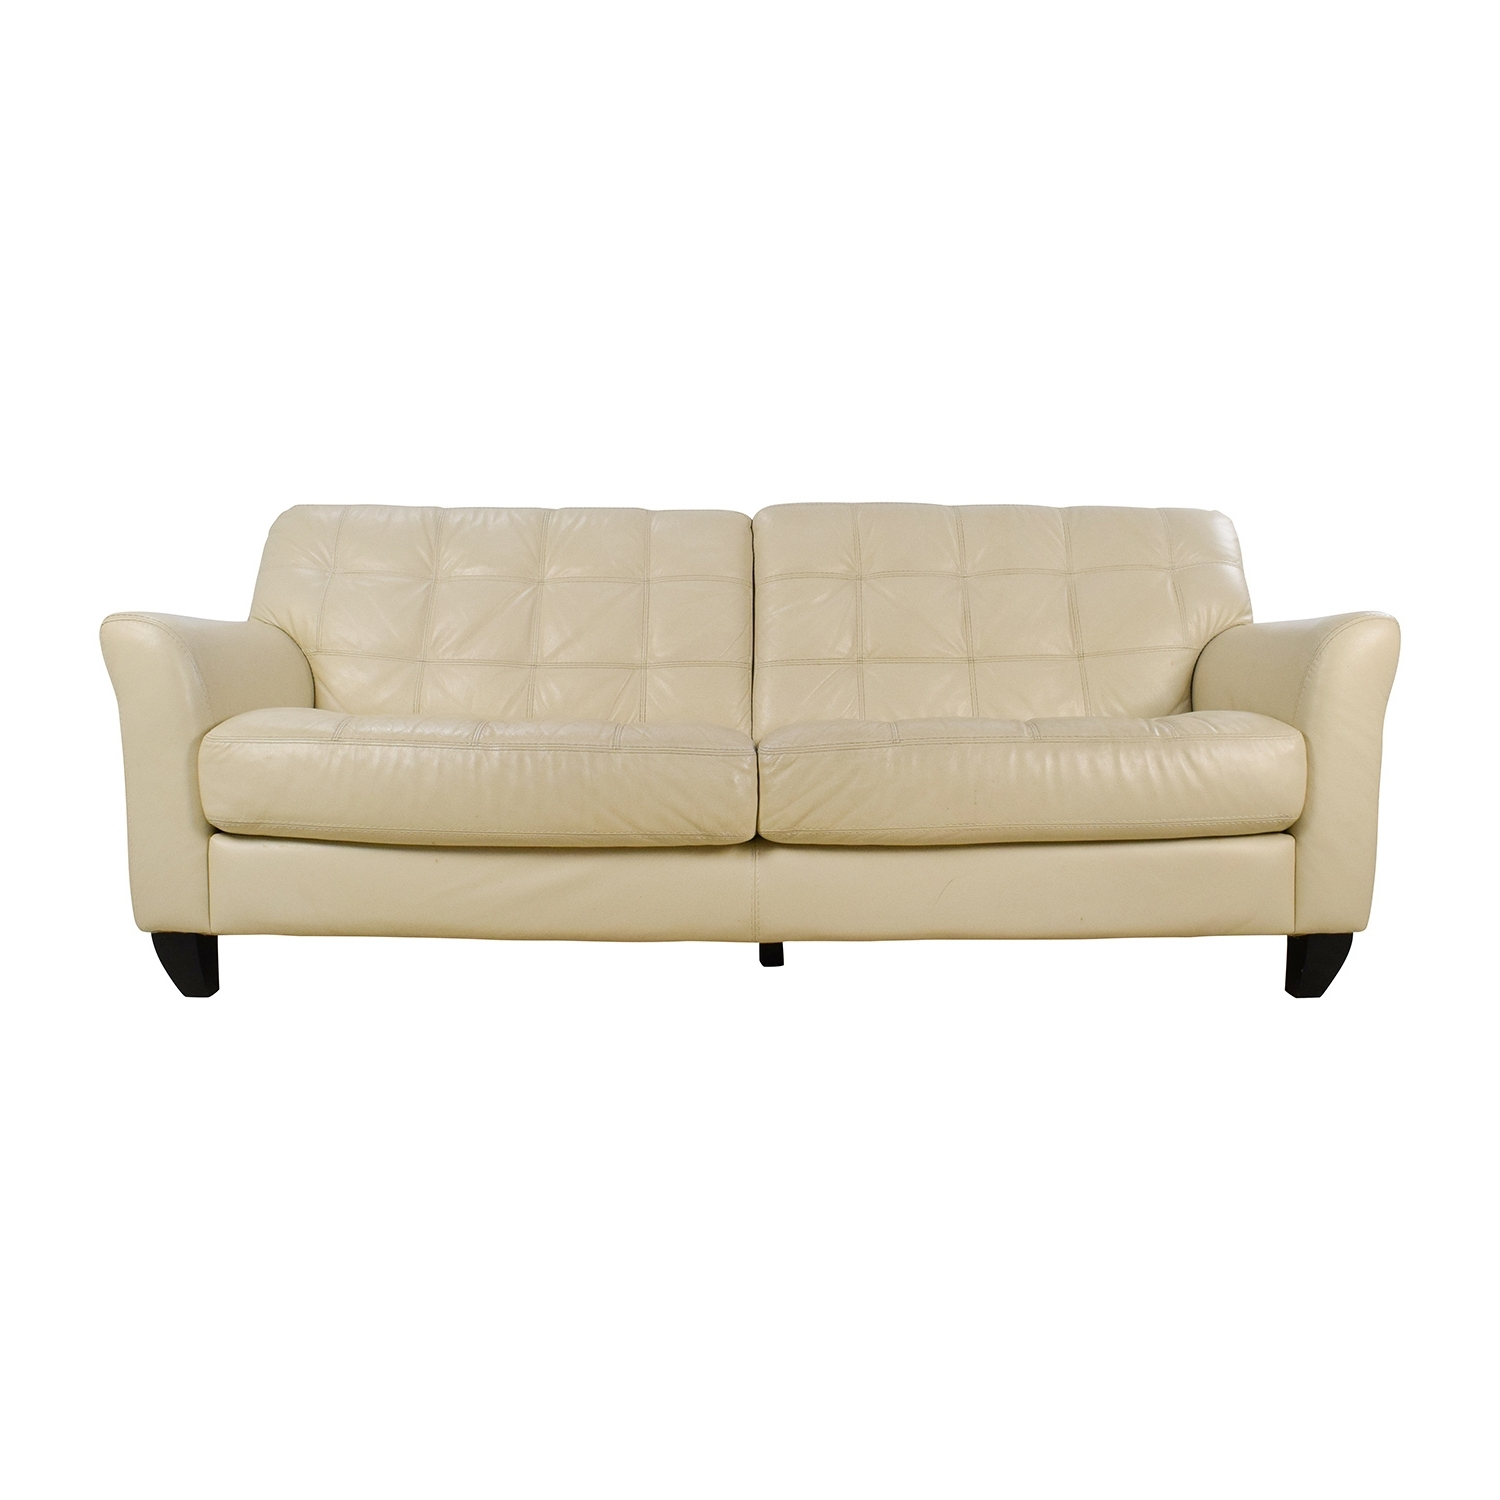 [%68% Off – Macy's Macy's Milan White Leather Couch / Sofas With Latest Off White Leather Sofas|off White Leather Sofas Inside Trendy 68% Off – Macy's Macy's Milan White Leather Couch / Sofas|2019 Off White Leather Sofas Inside 68% Off – Macy's Macy's Milan White Leather Couch / Sofas|famous 68% Off – Macy's Macy's Milan White Leather Couch / Sofas In Off White Leather Sofas%] (View 13 of 20)